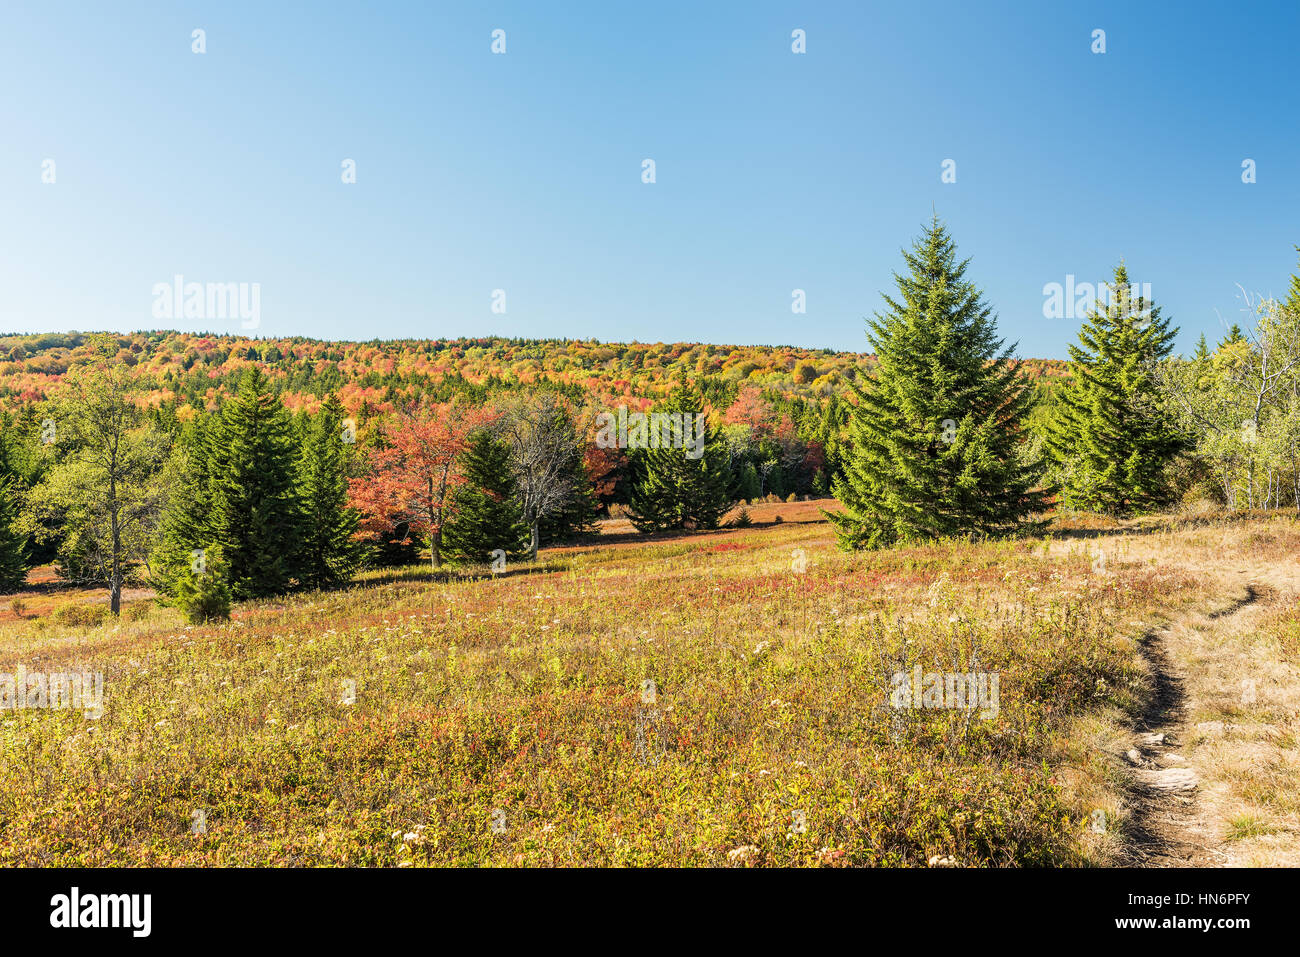 Dolly sods meadow and trail path during autumn in West Virginia - Stock Image